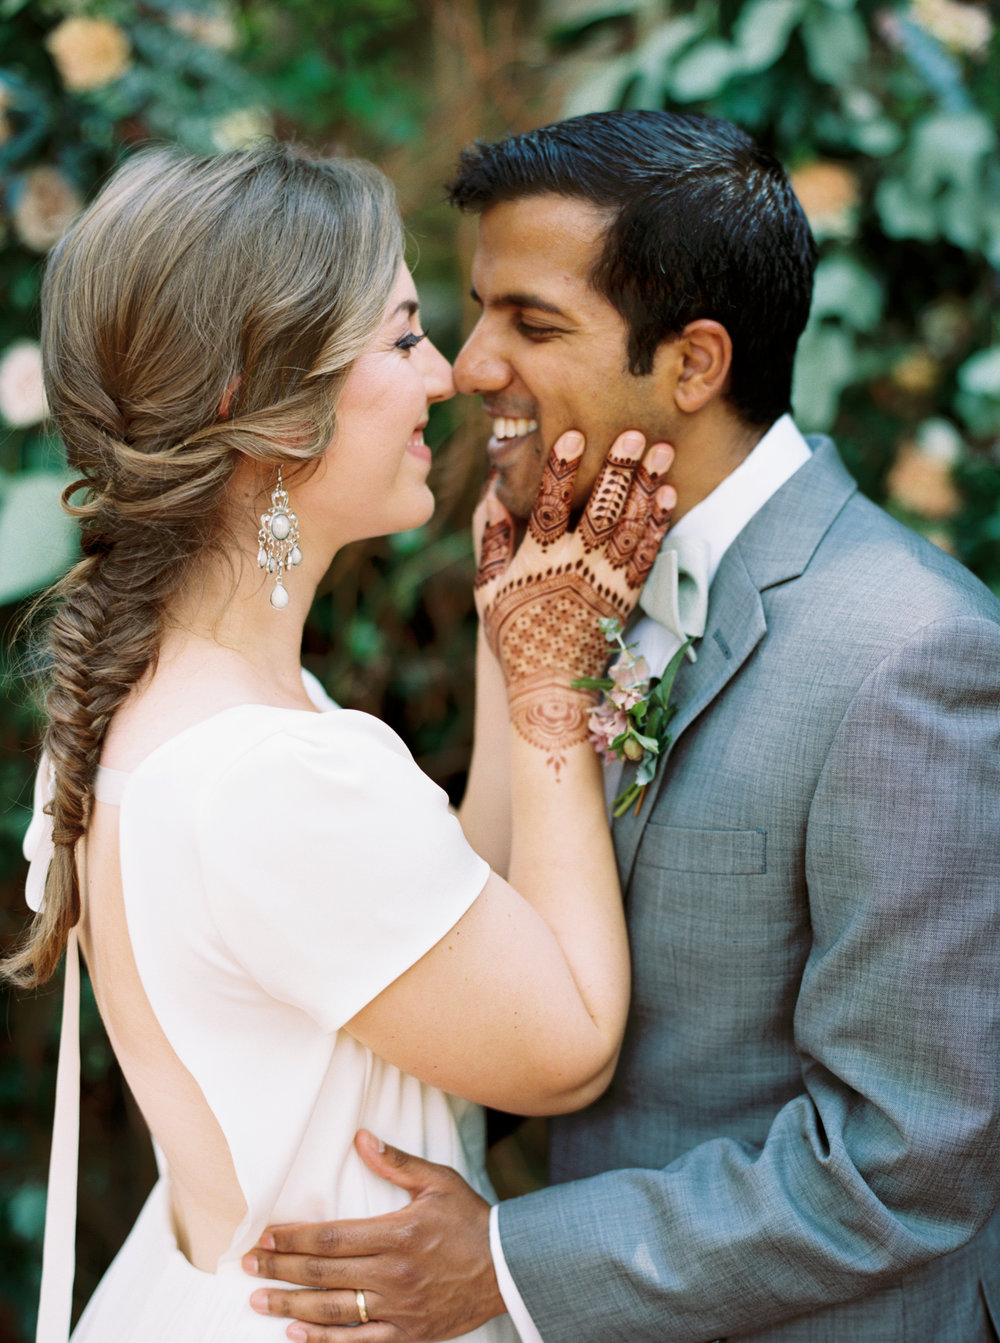 Wahoo_Grill_Atlanta_Indian_Wedding_Abigail_Malone_Photgoraphy_FIlm-115.jpg